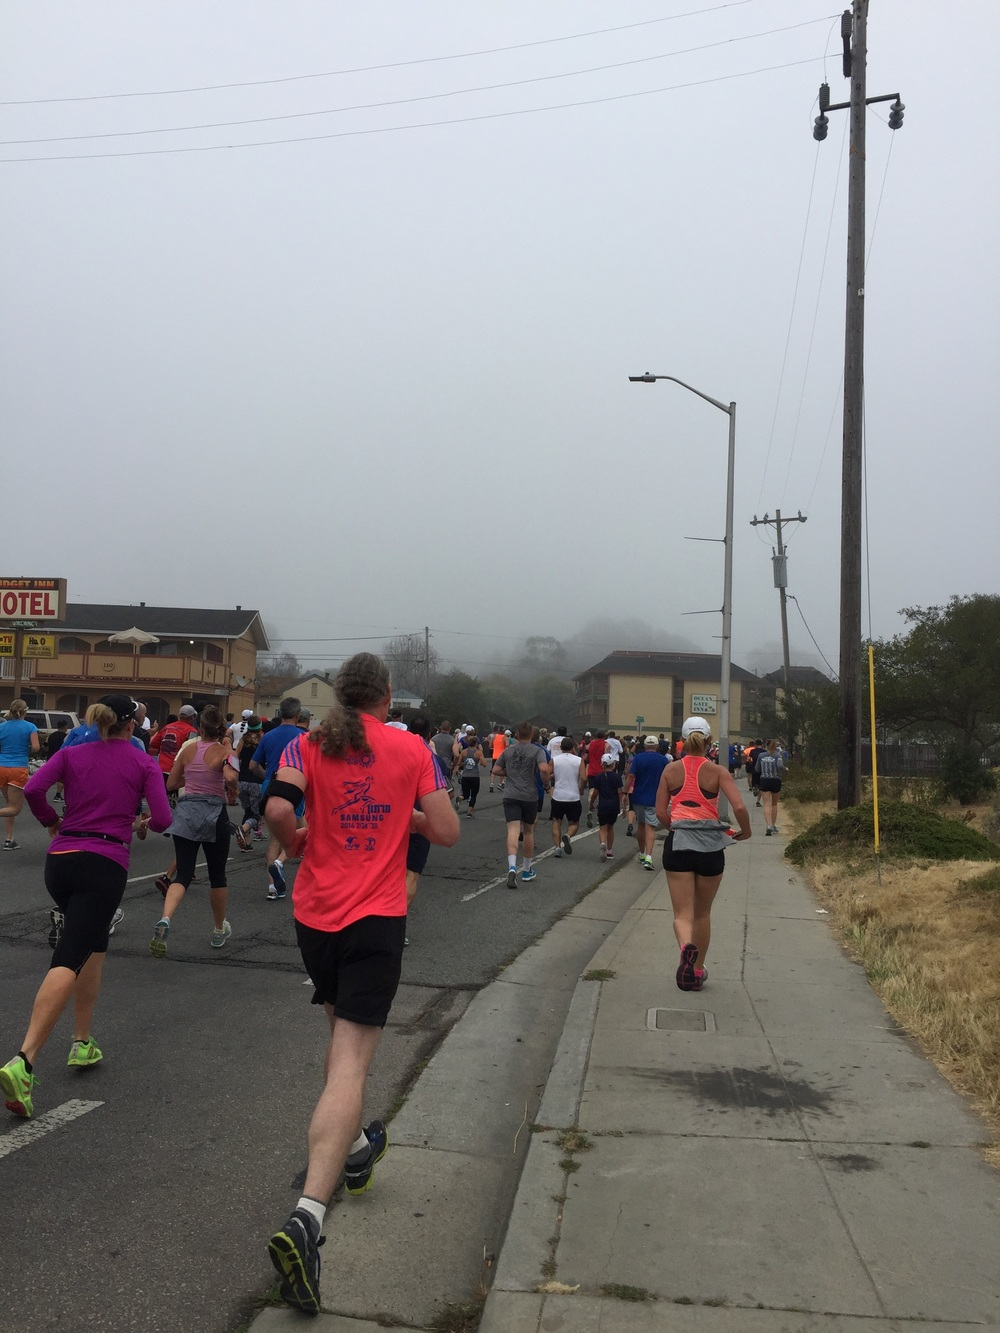 Mile 1 and the crowds were still thick.